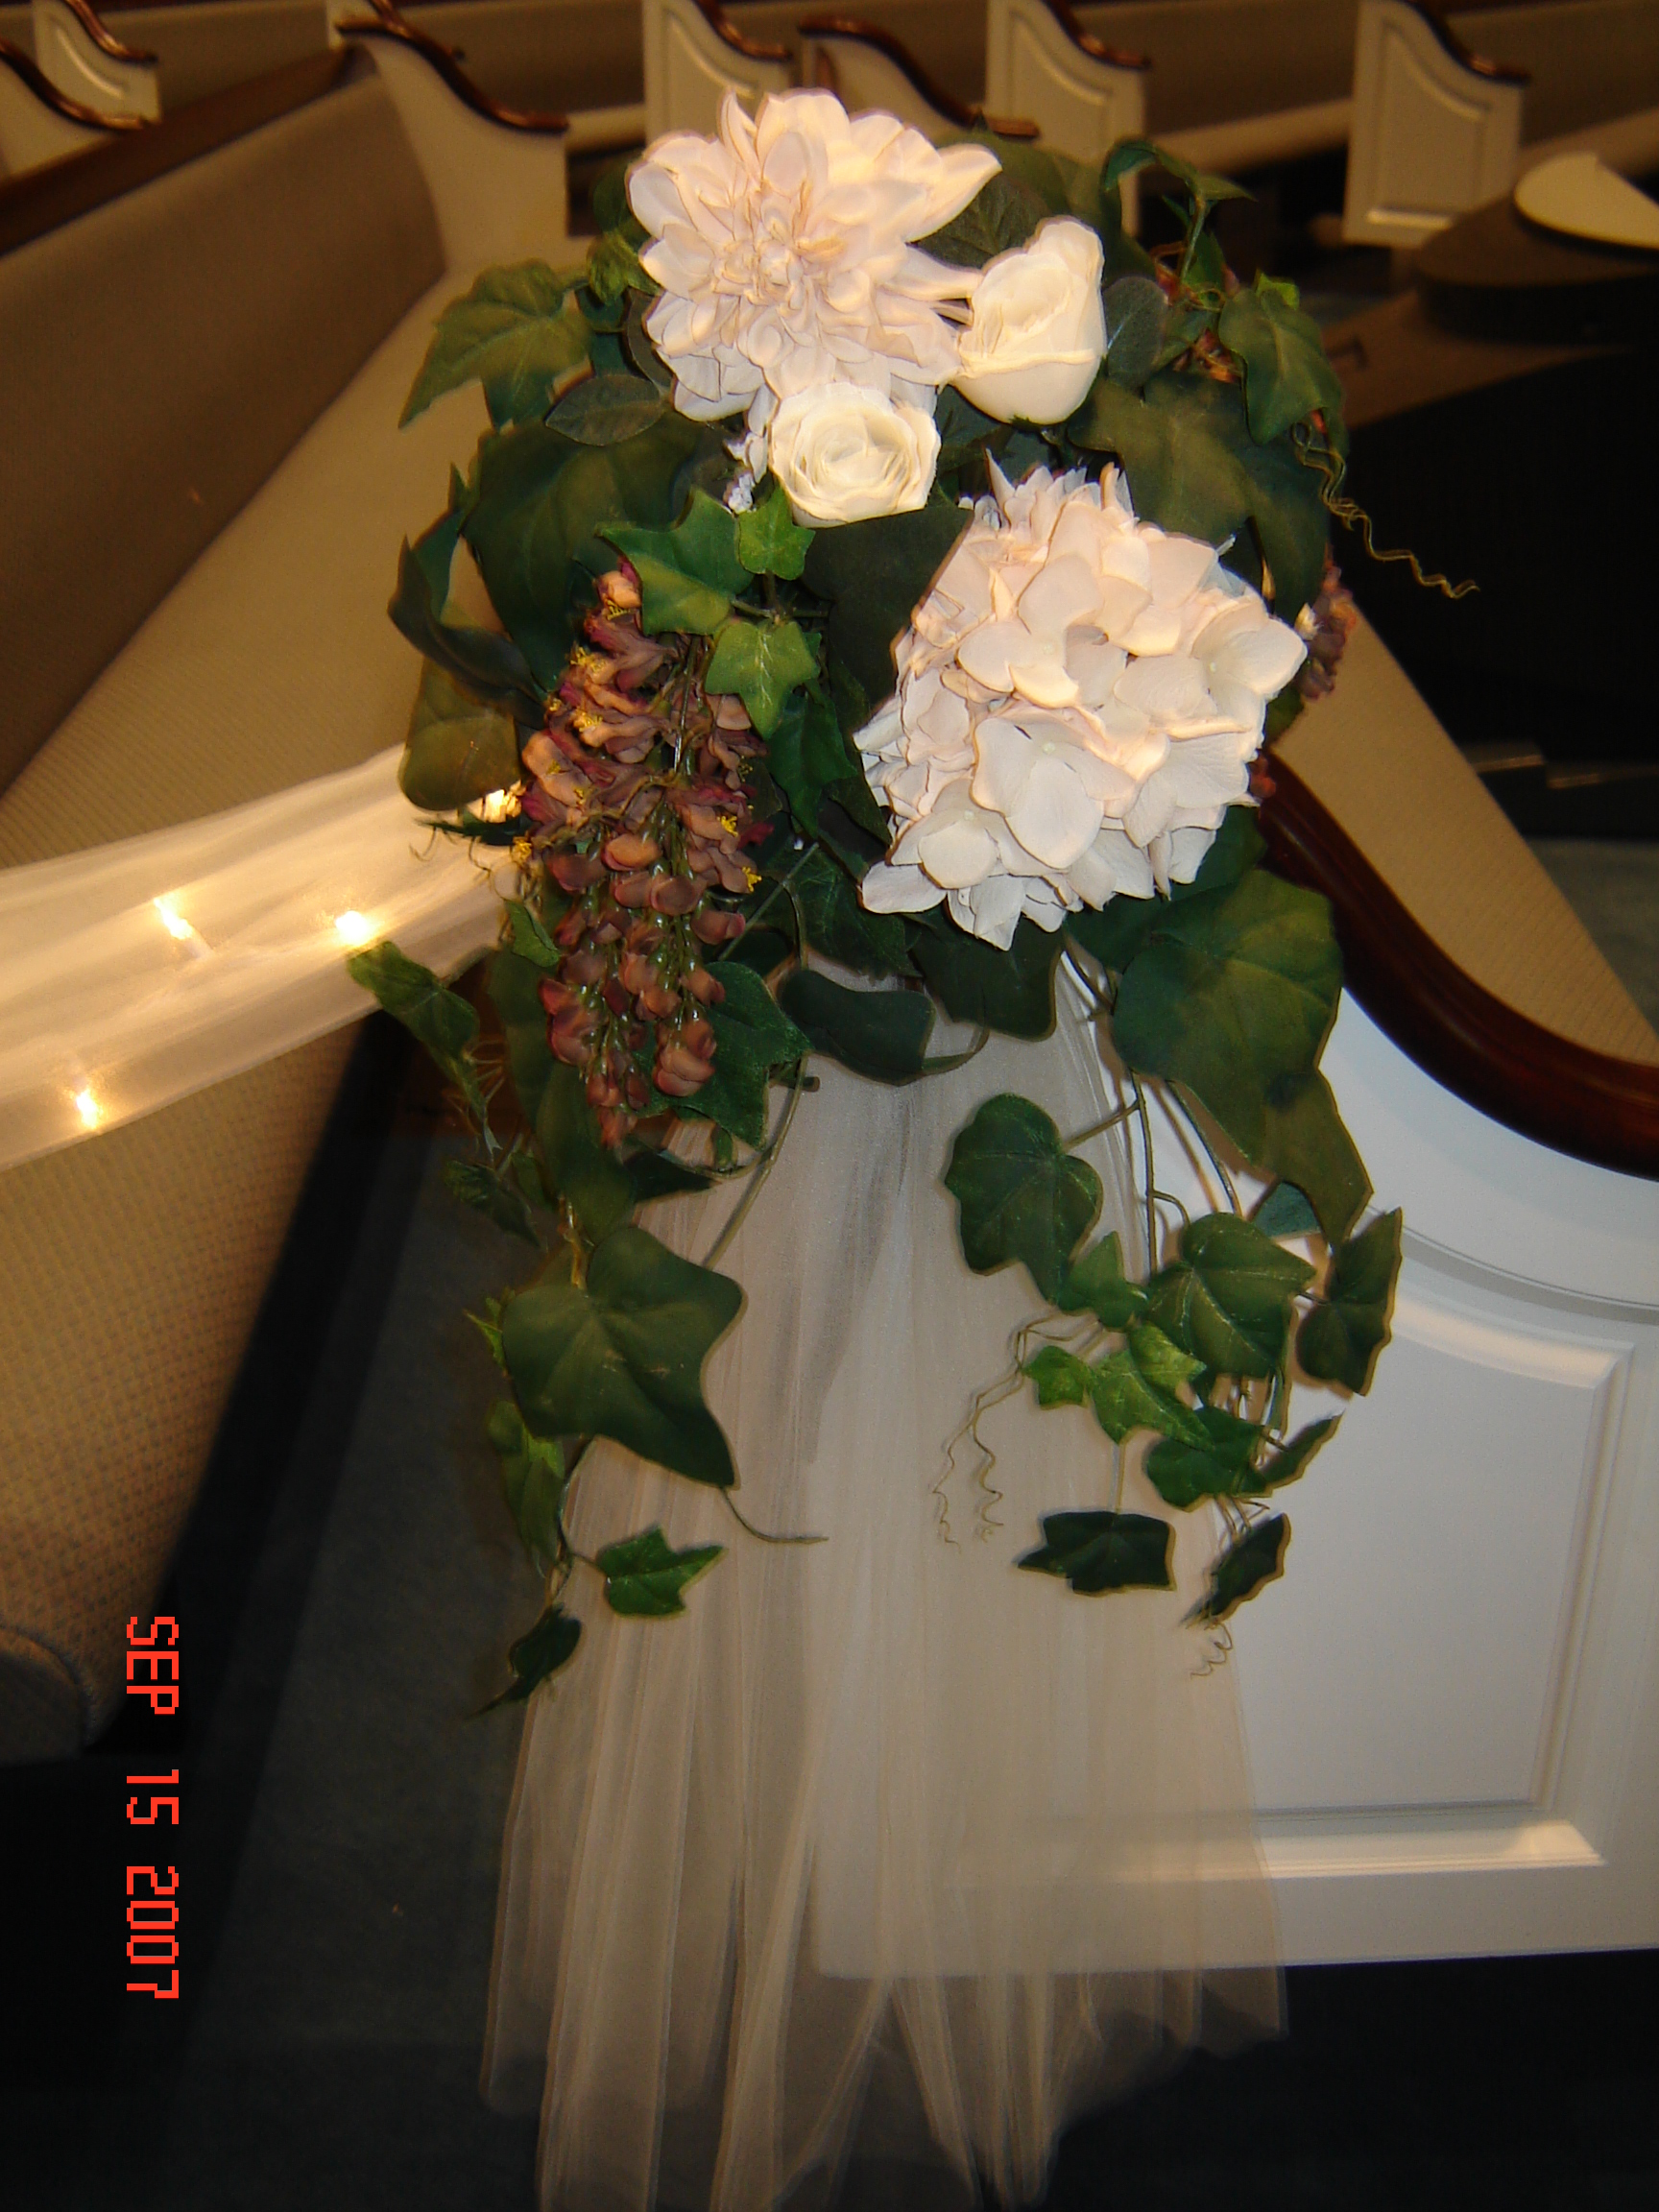 Simply Elegant Weddings Flowers Silk Bouquets Corsages Boutonnieres Fort Worth Tx Dallas